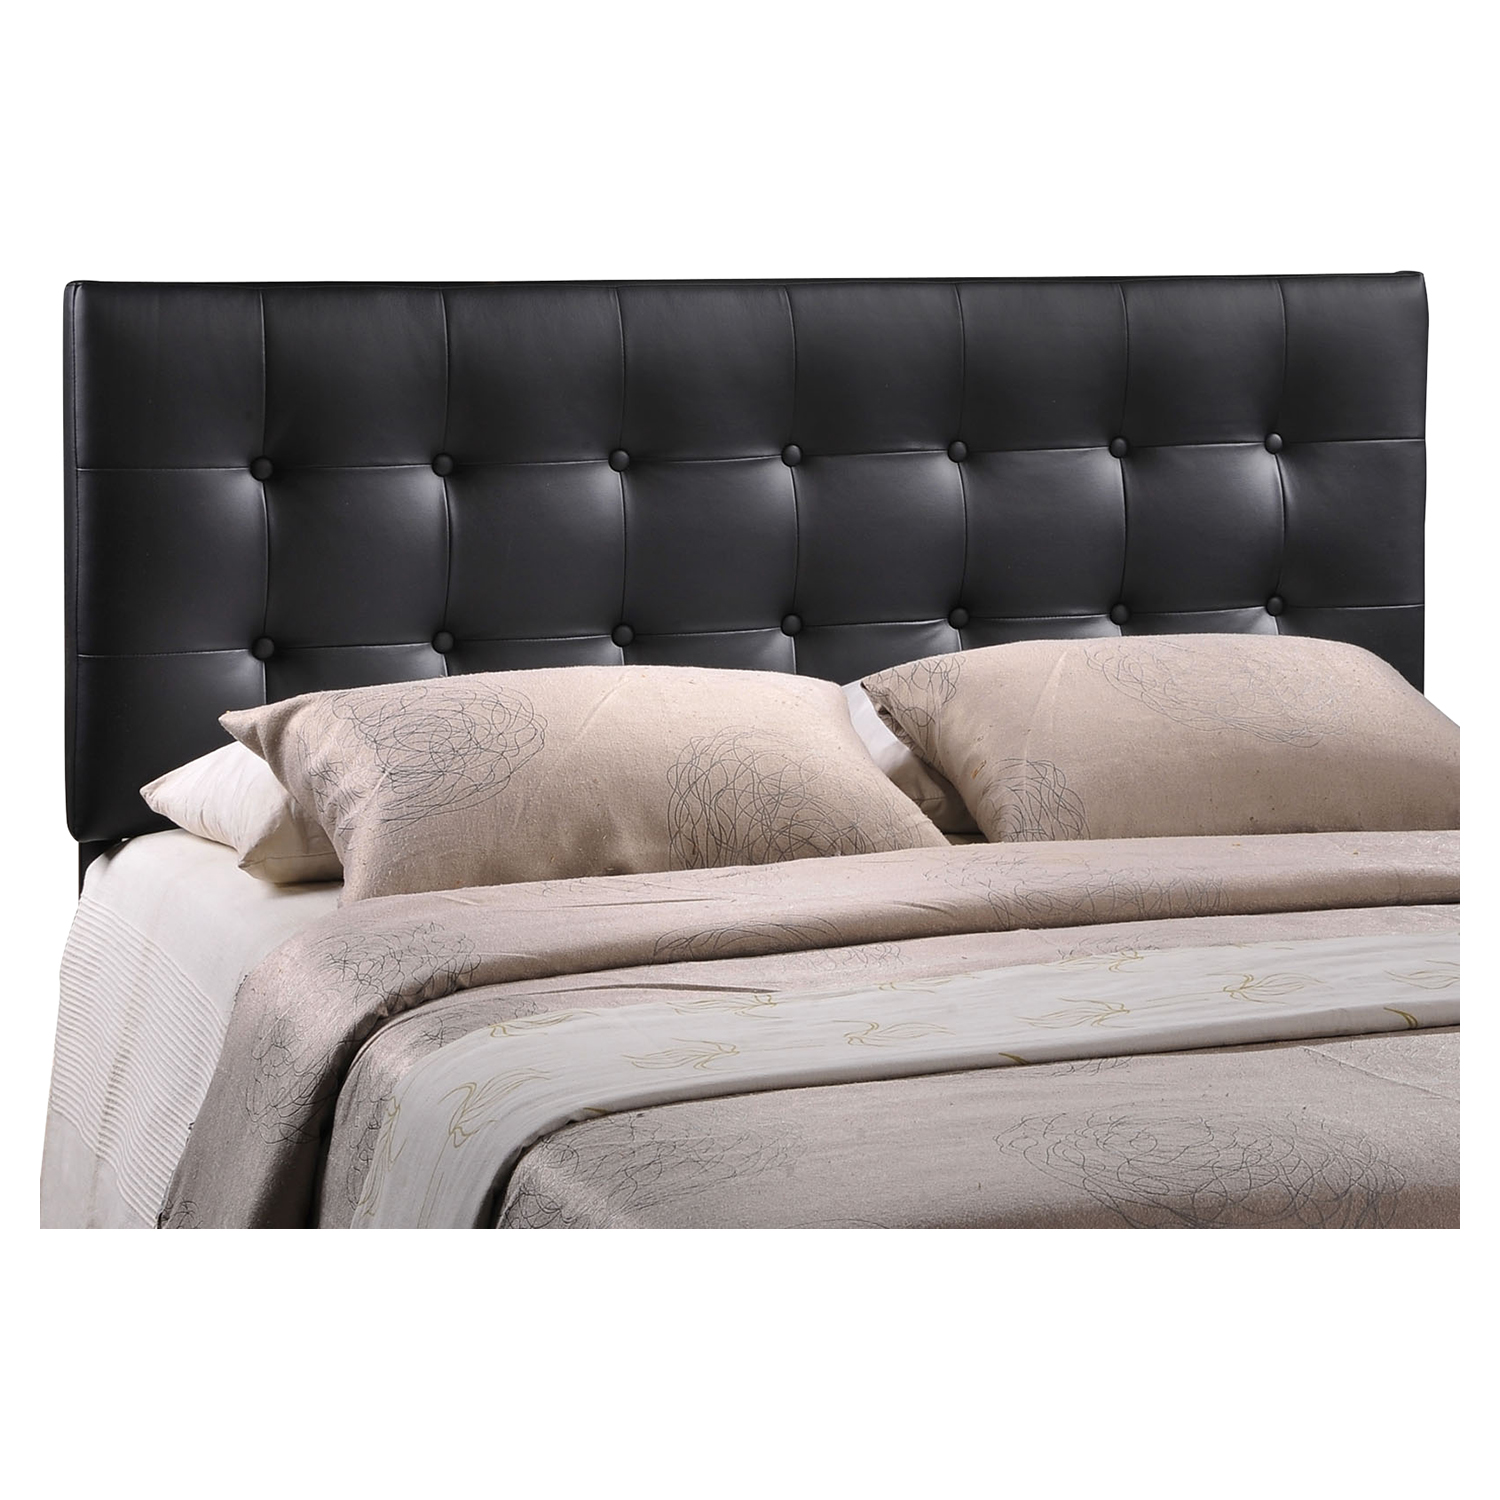 Emily Leatherette Headboard - Button Tufted, Black - EEI-MOD-517-BLK